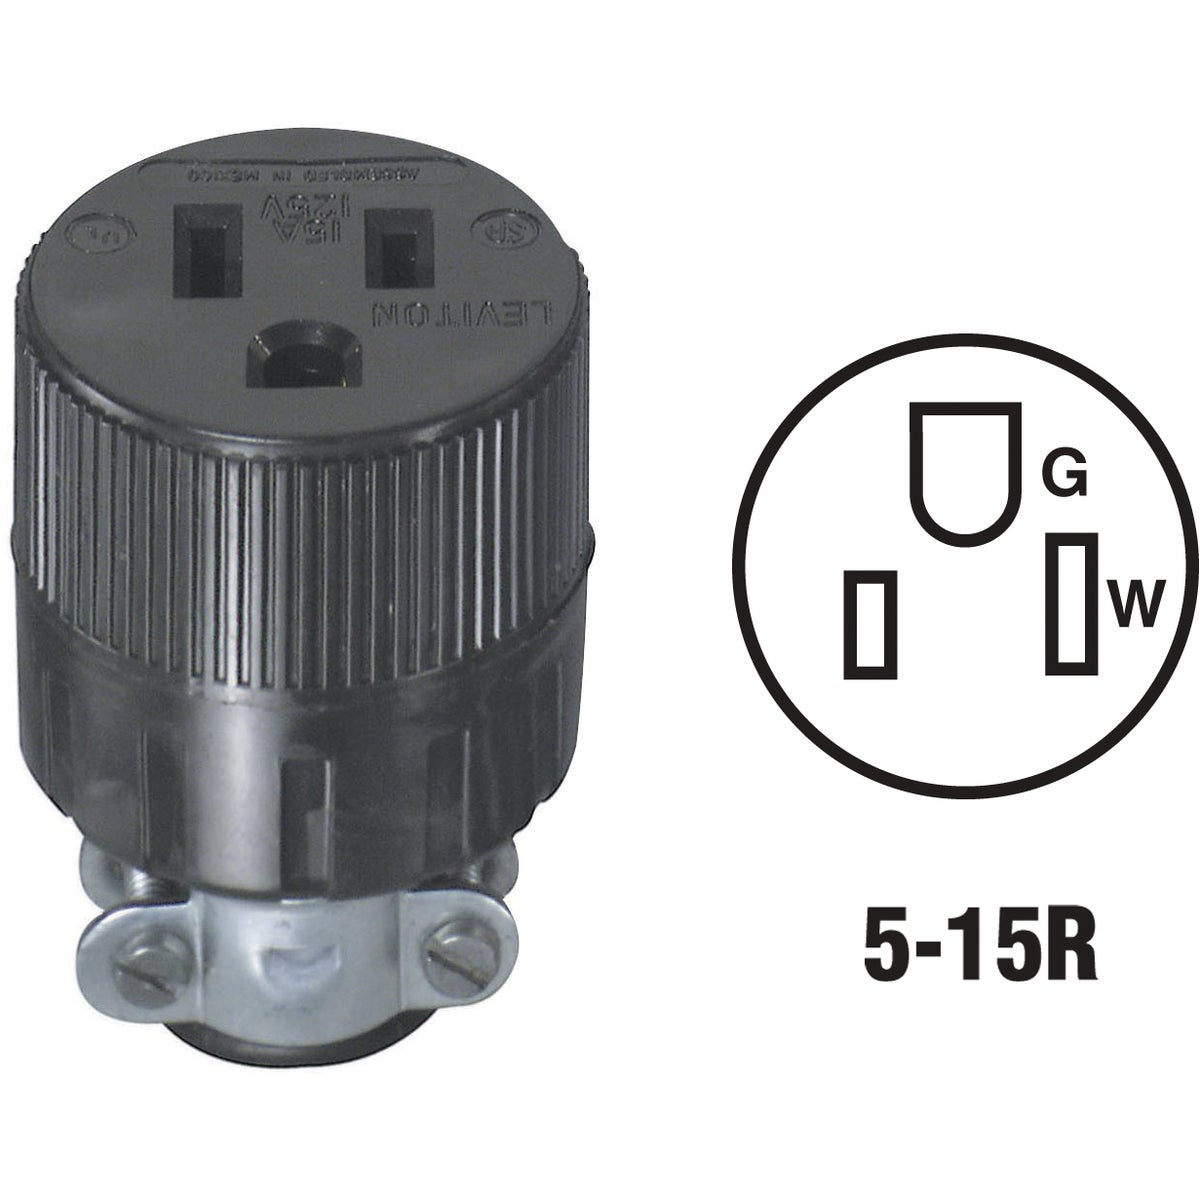 BLK CORD CONNECTOR - 617 by Leviton Mfg Co